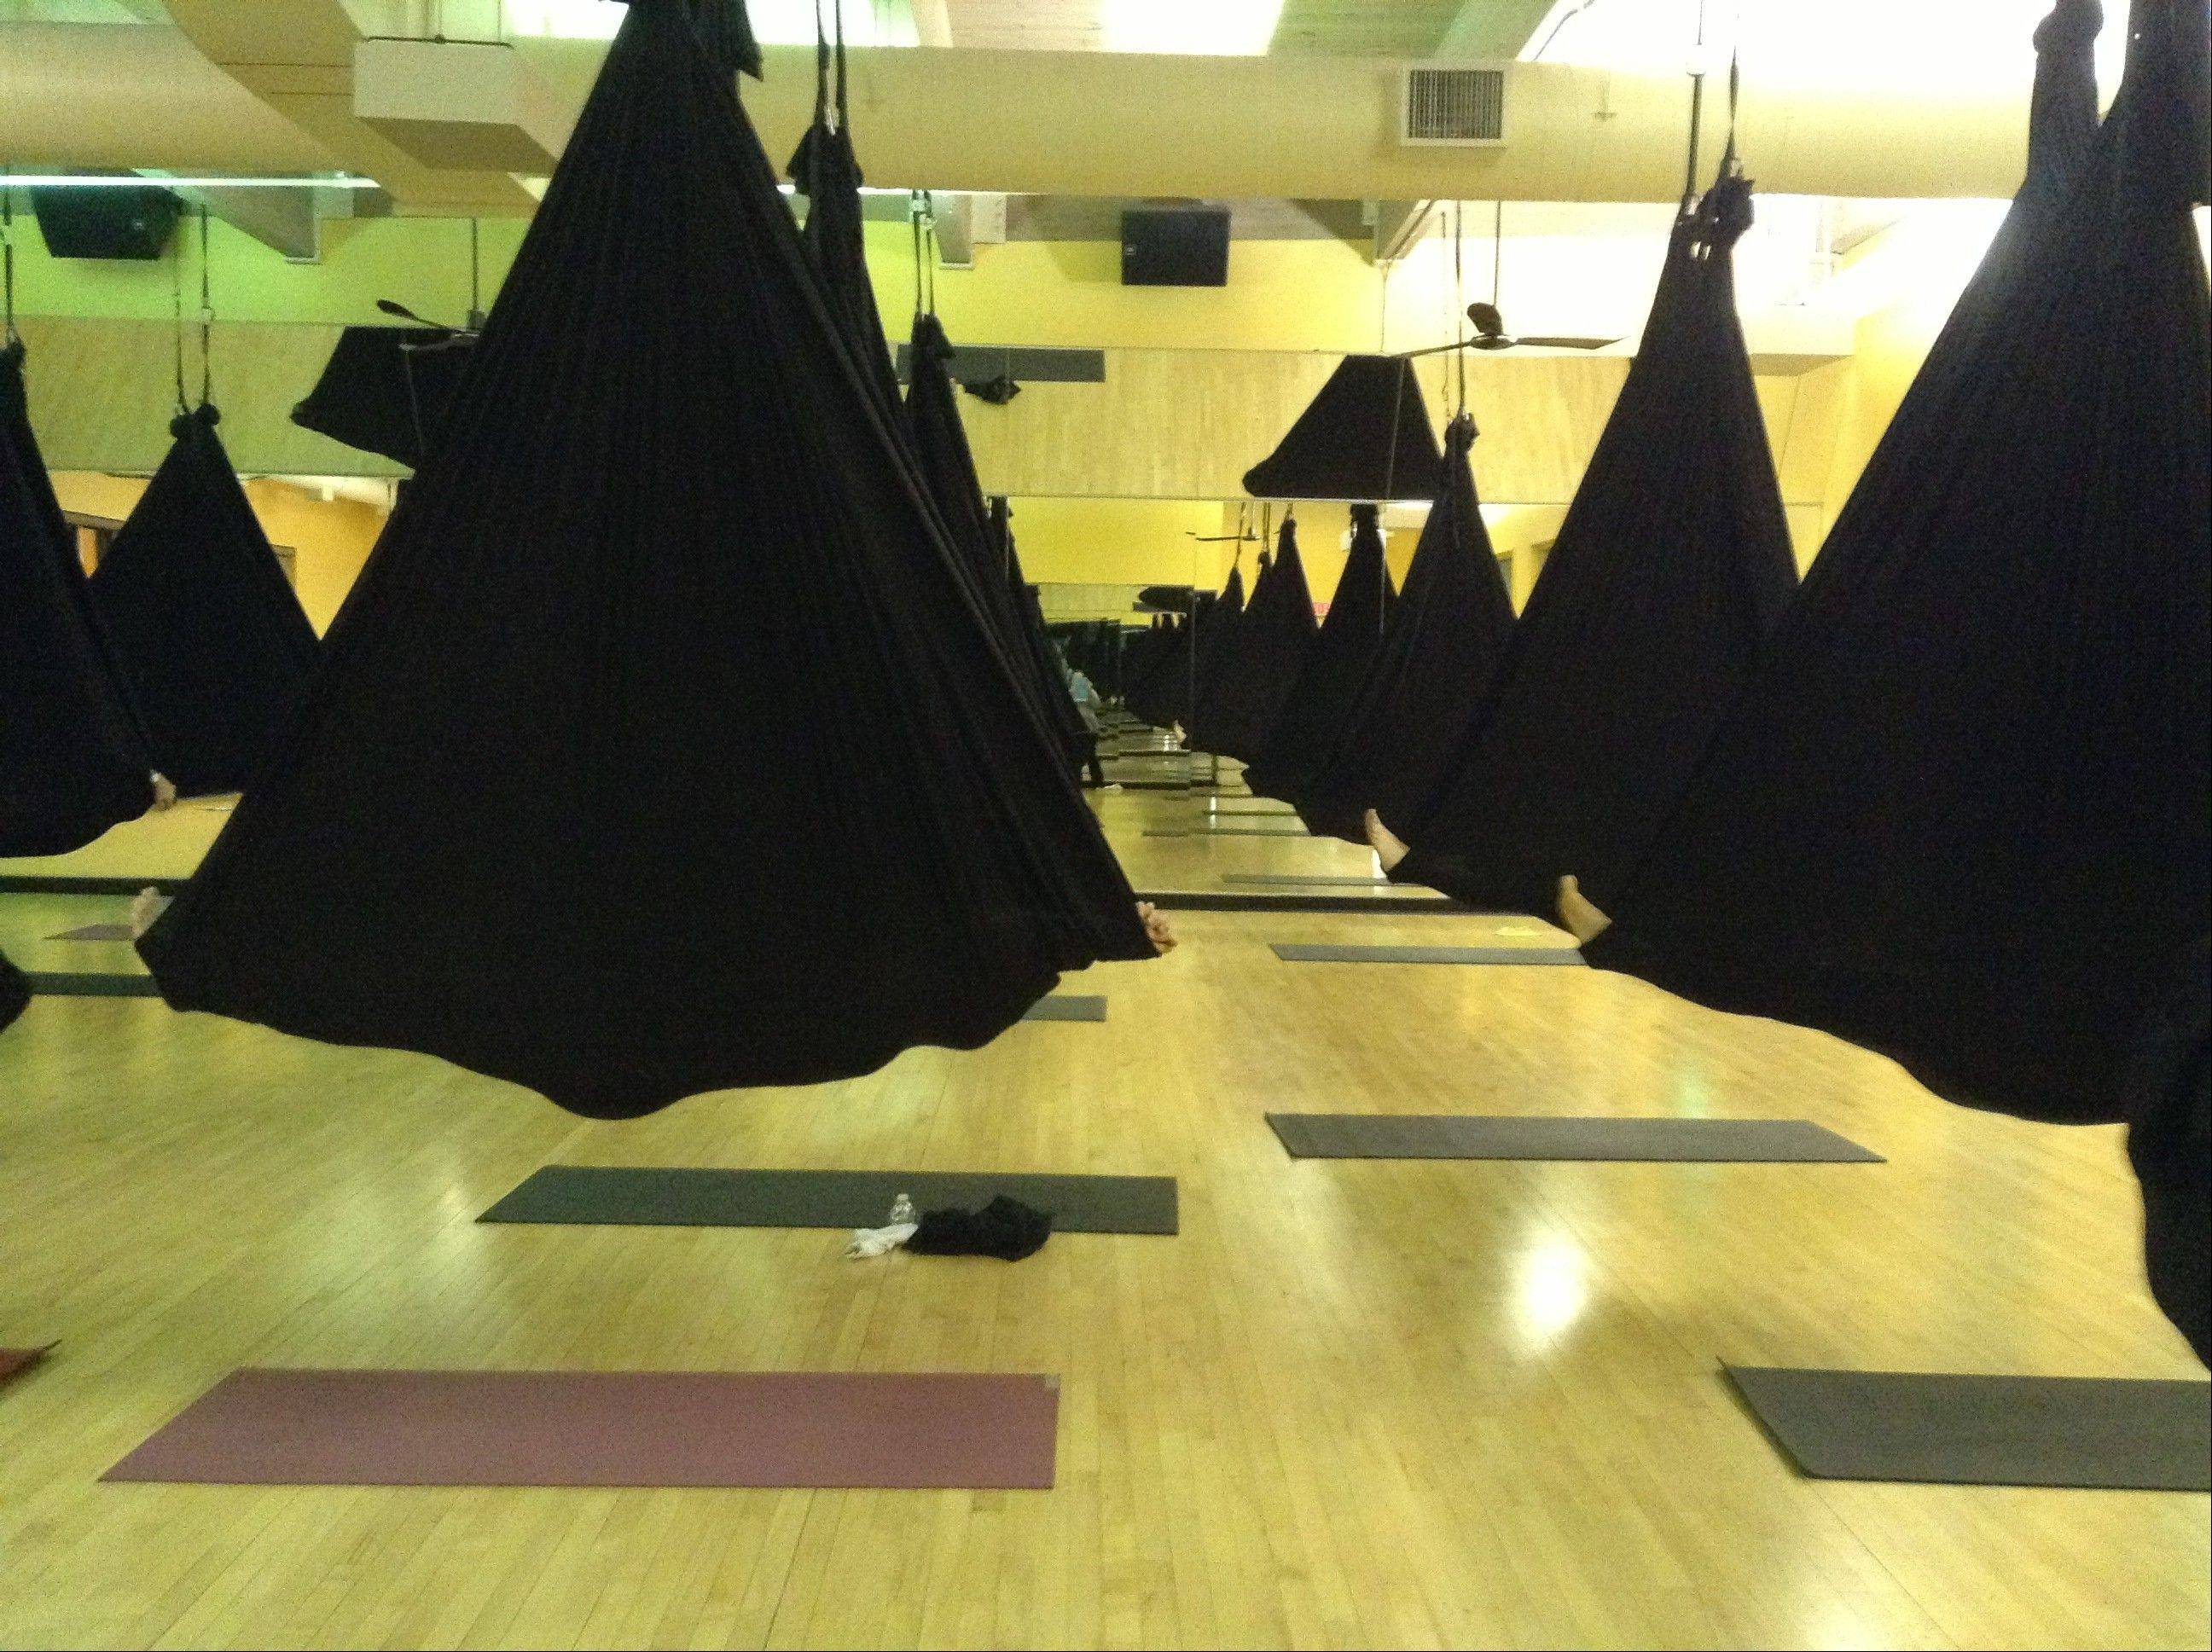 Students enjoy relaxation cocooned in their black hammocks during an aerial yoga class at Sky Fitness in Buffalo Grove.